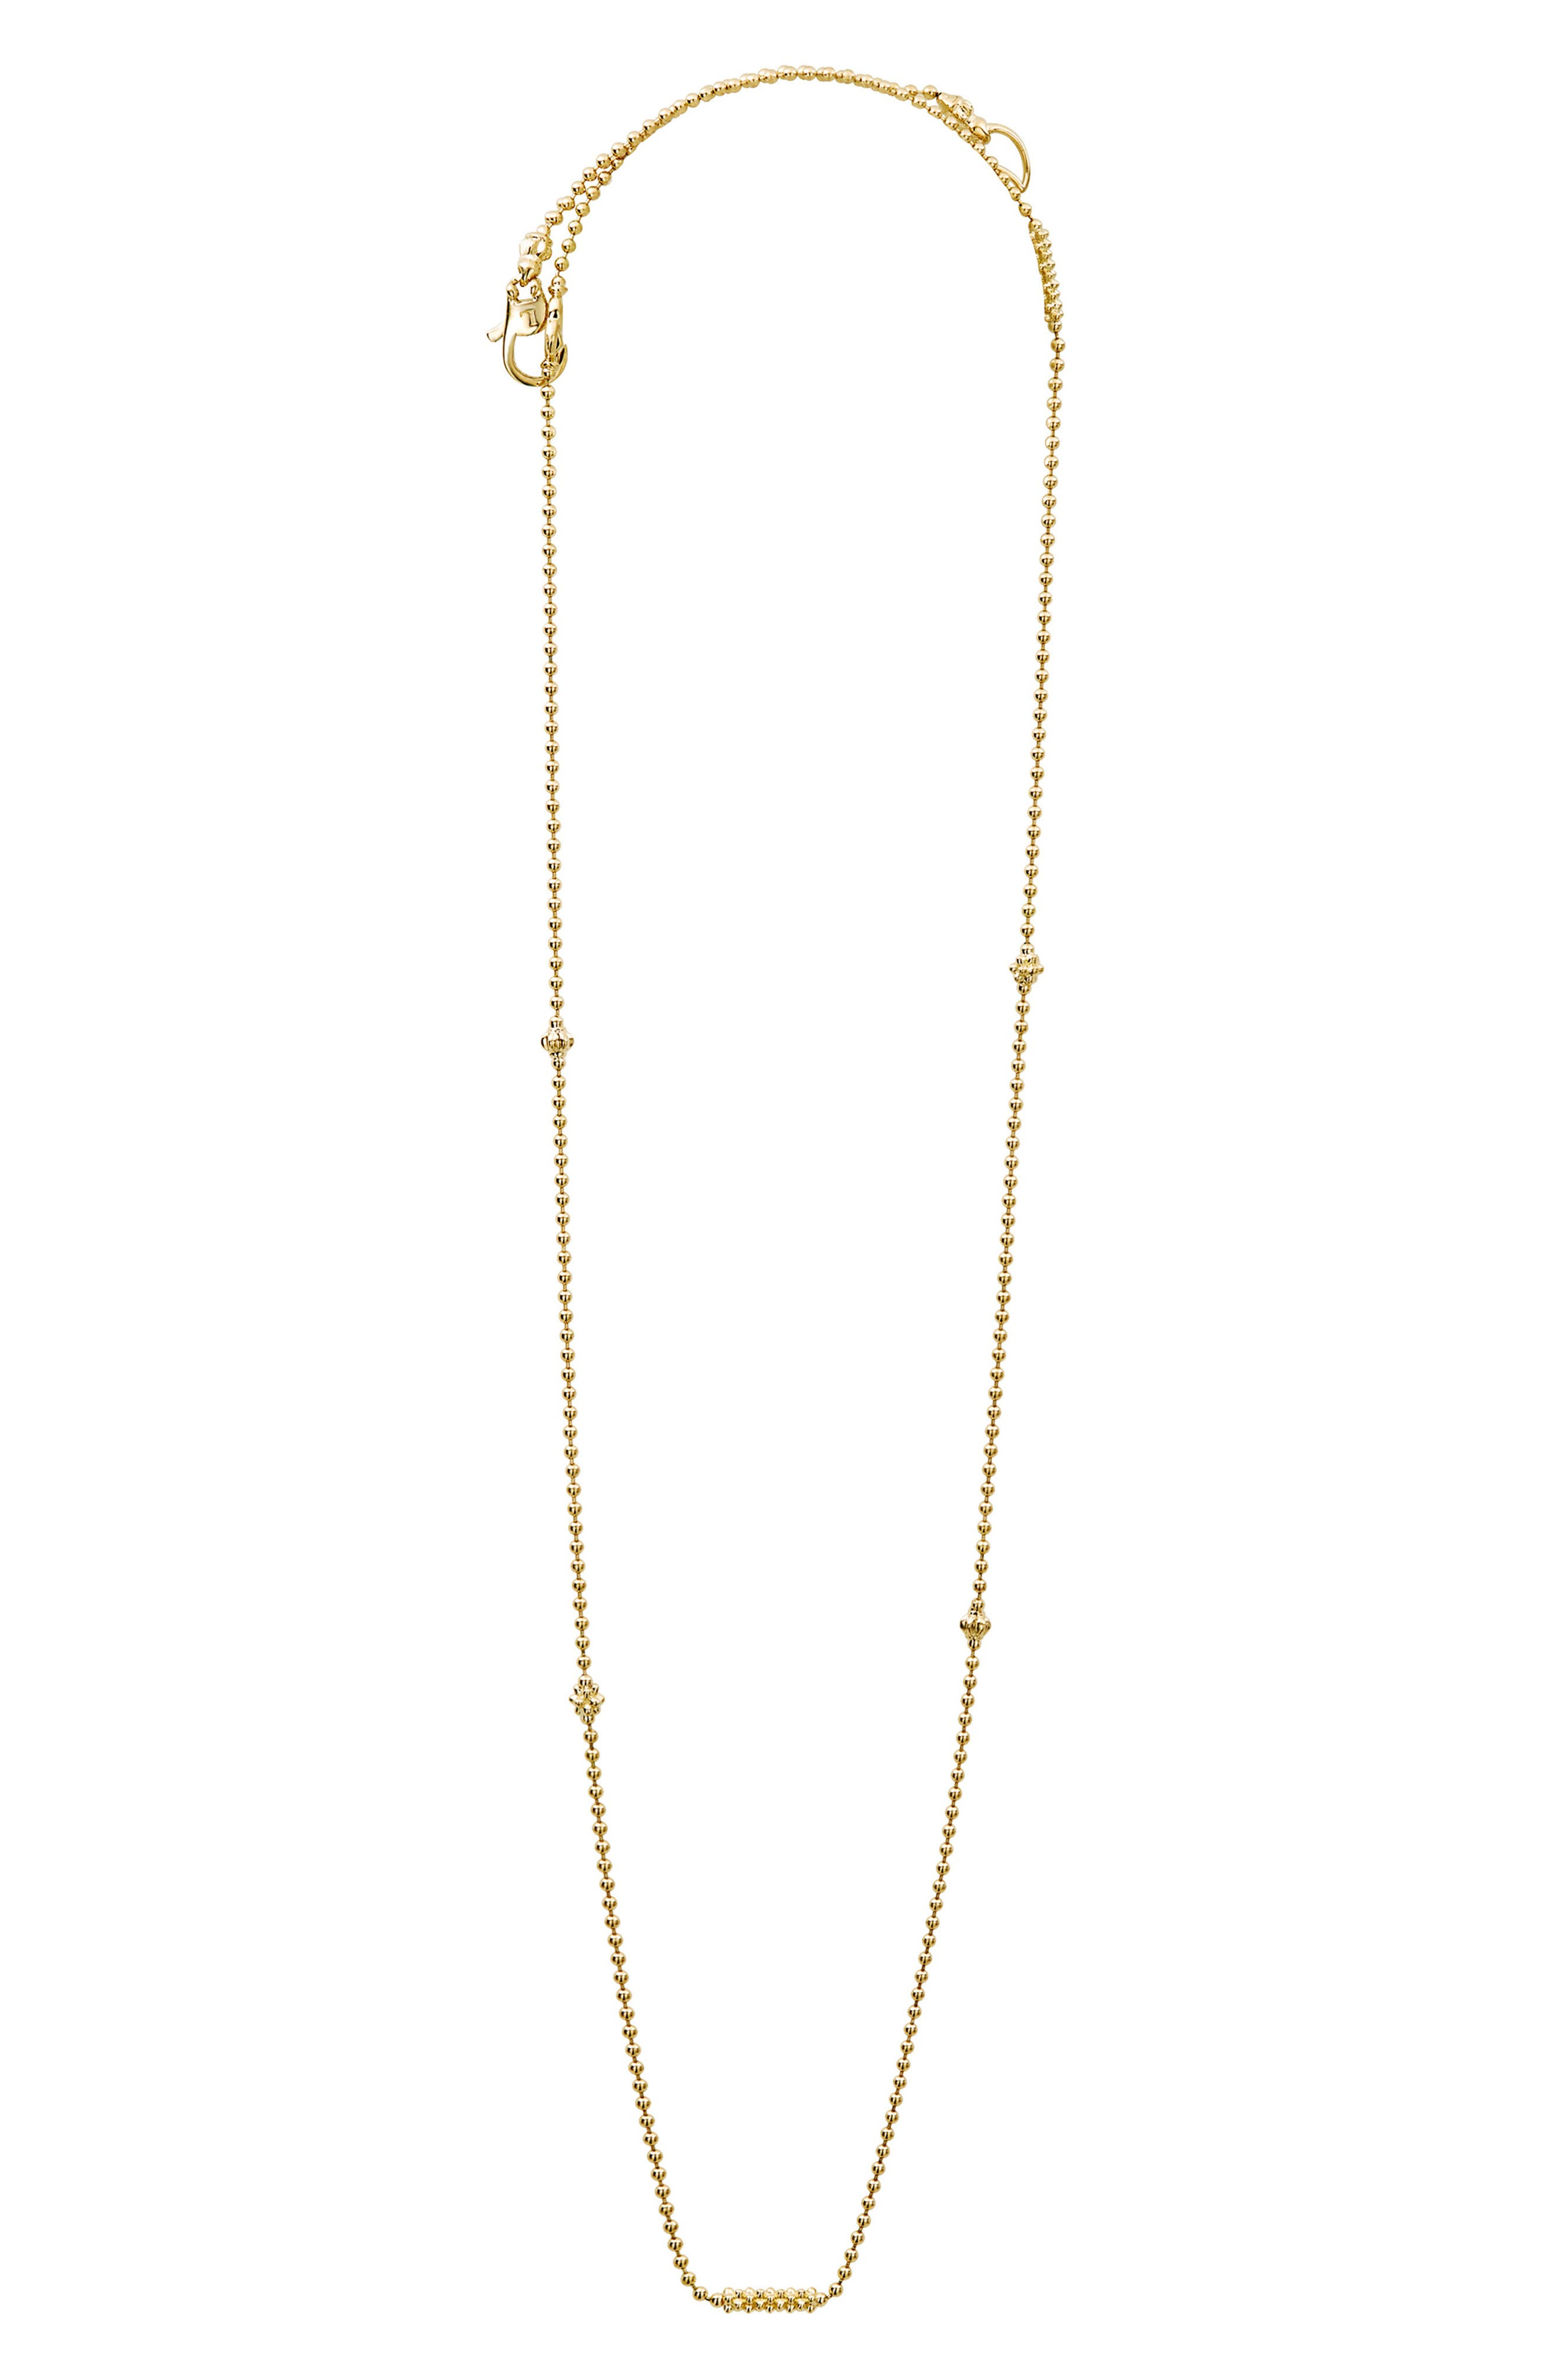 Caviar Bars & Cages Chain Necklace,                             Main thumbnail 1, color,                             Gold